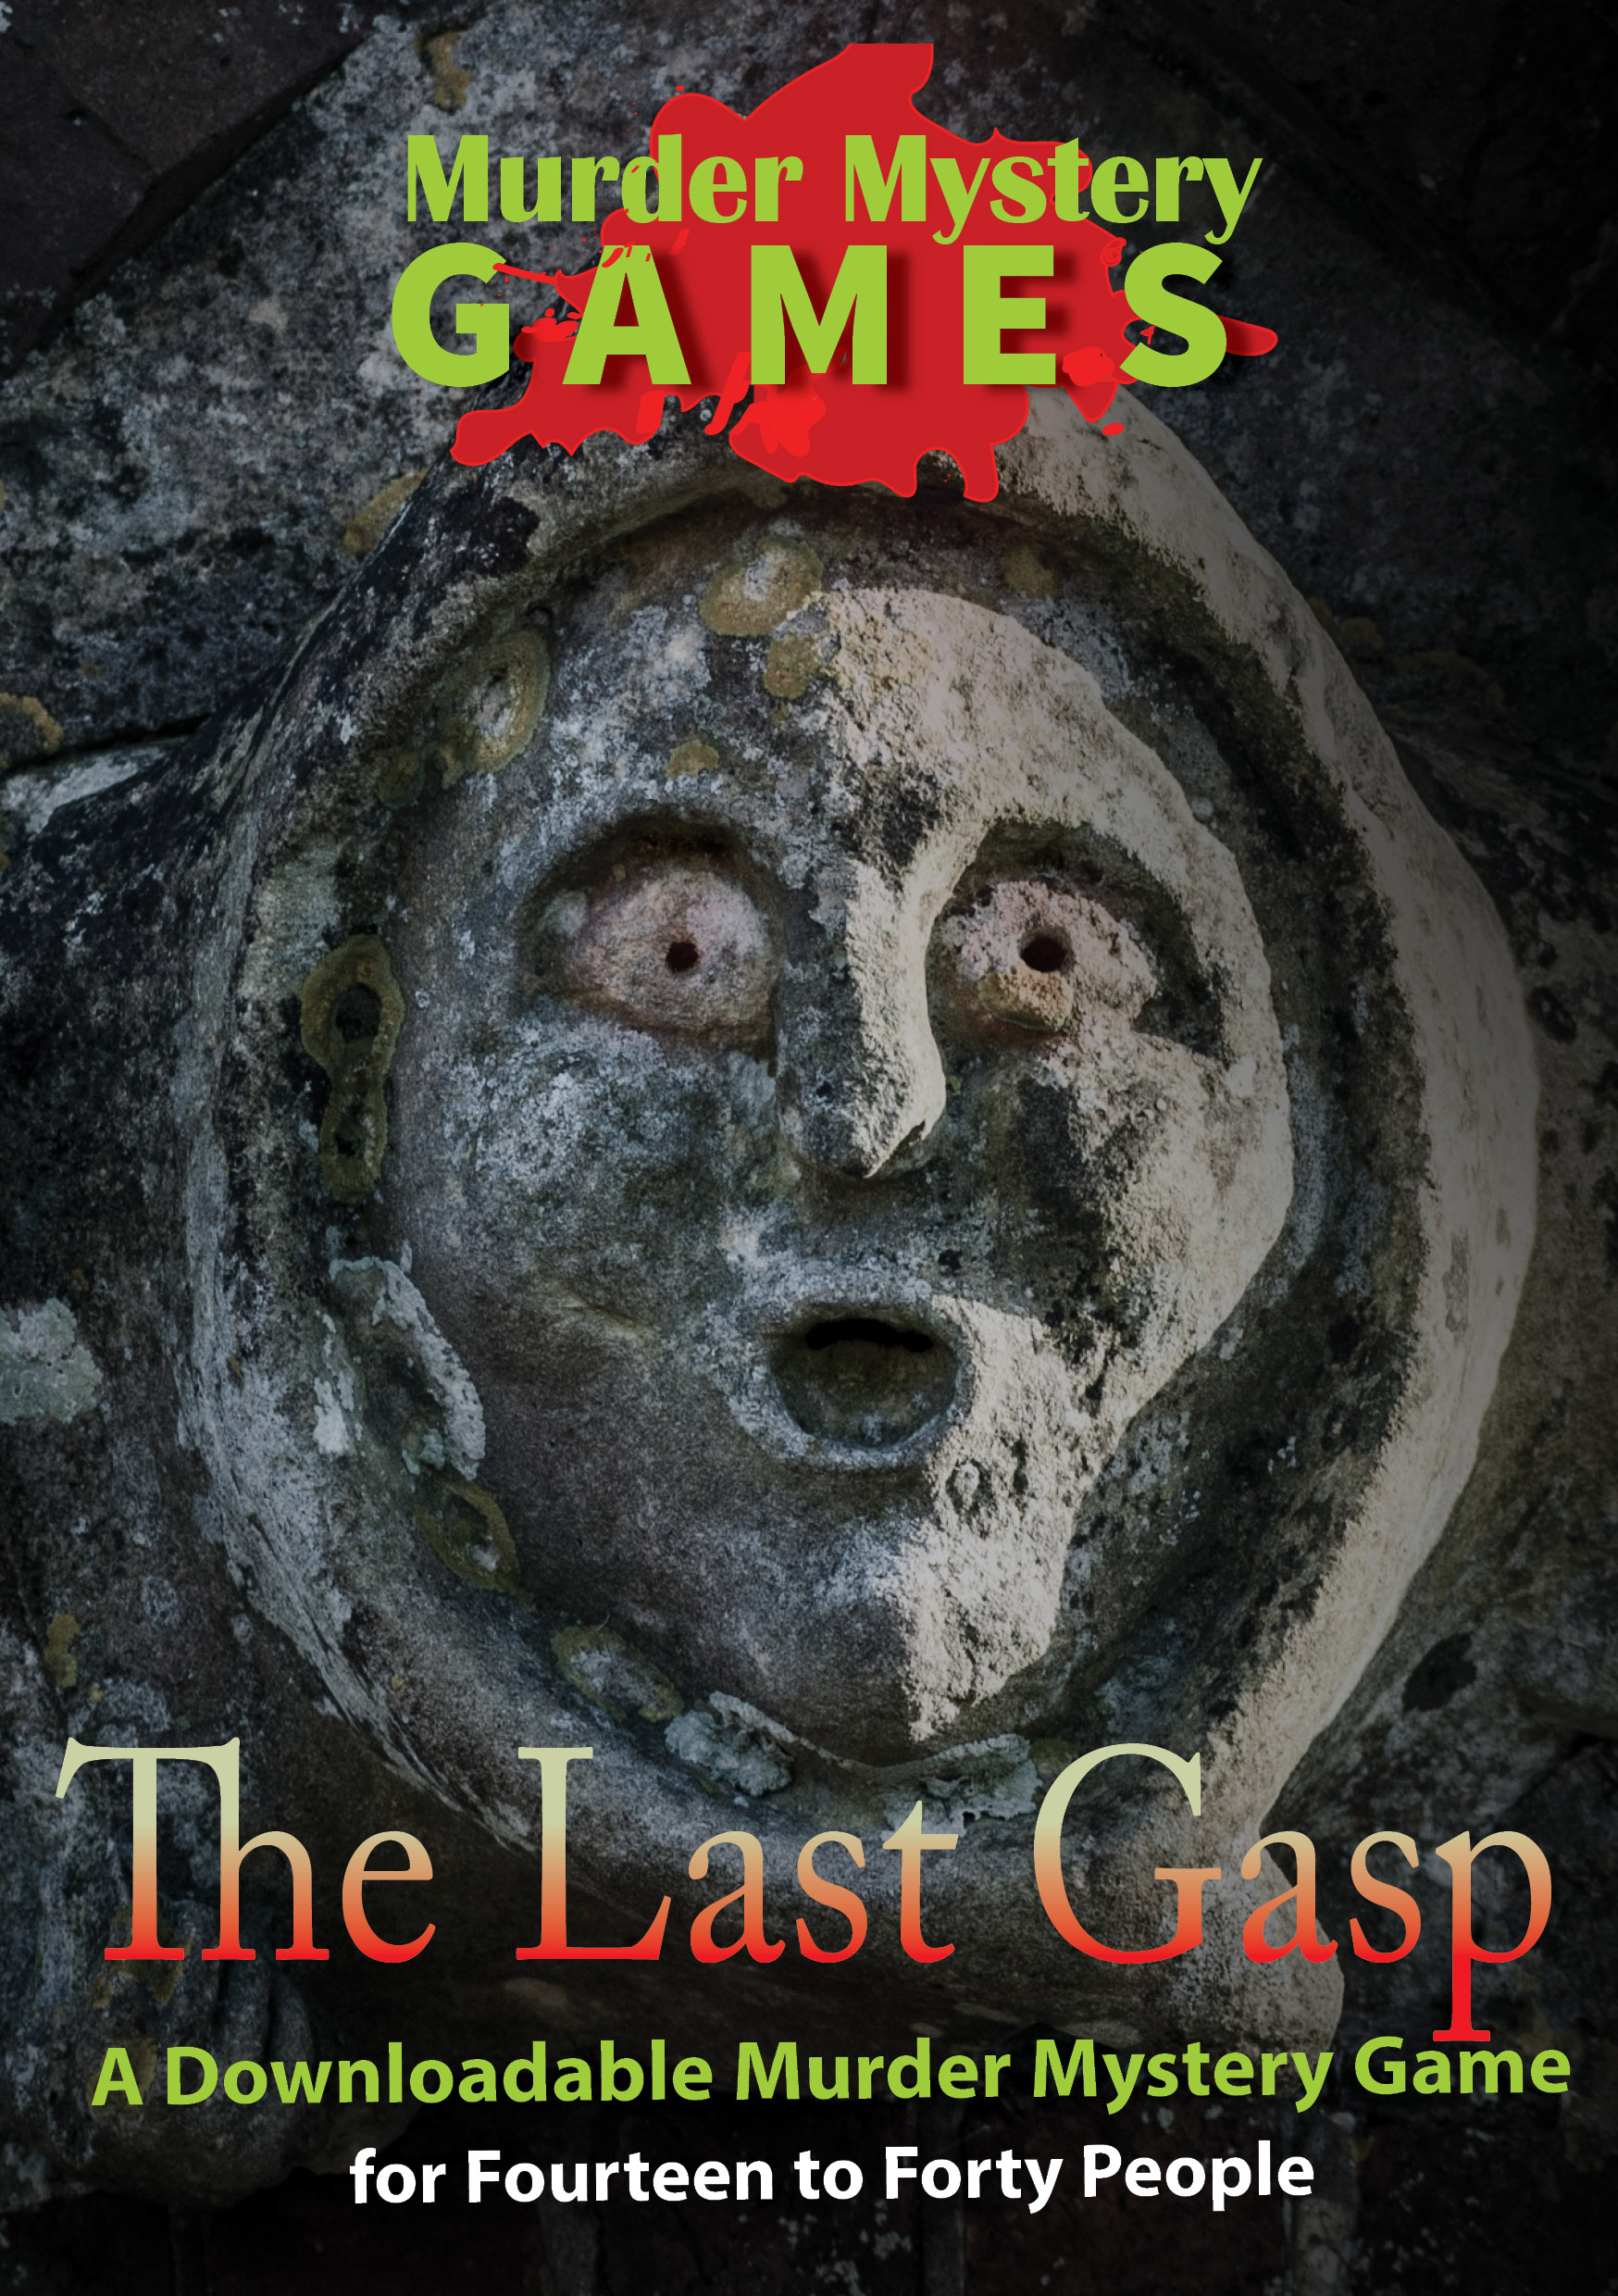 The Last Gasp - A Downloadable Victorian Murder Mystery Game for Fourteen to Forty People